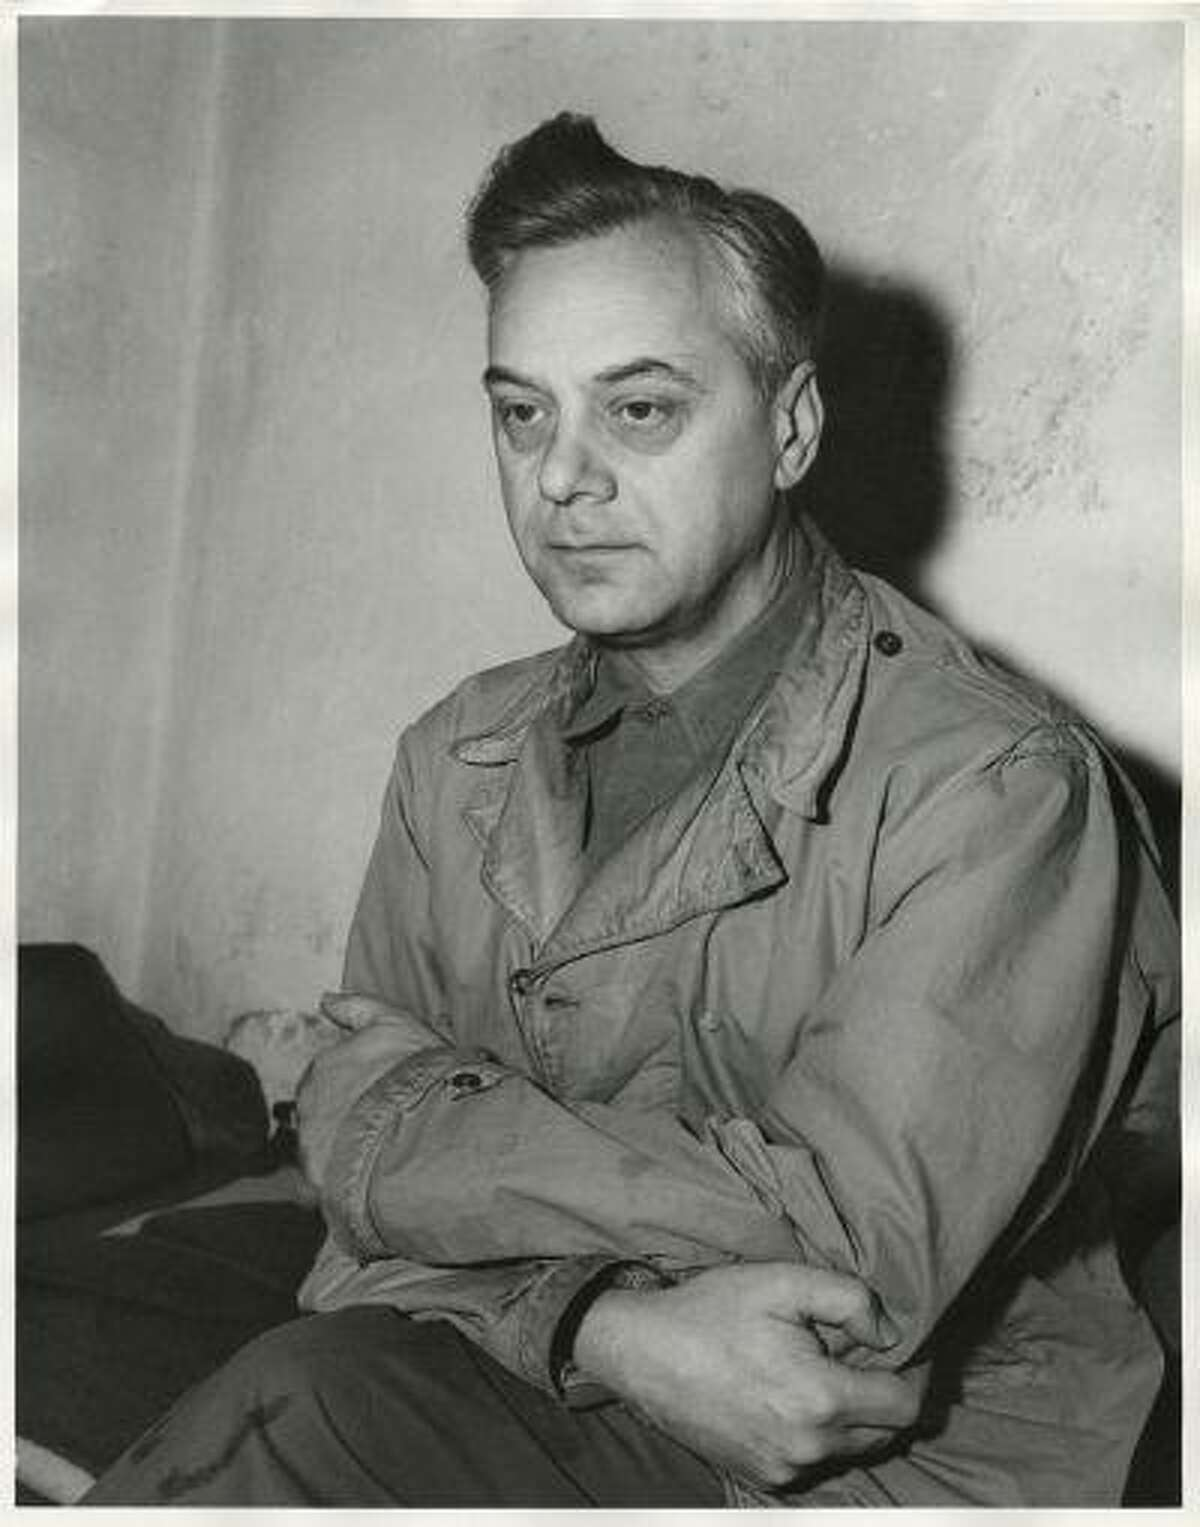 Defendant Alfred Rosenberg, the former Chief Nazi Party Ideologist, sits in his jail cell during the International Military Tribunal trial of war criminals at Nuremberg in this photograph taken by a United States Army Signal Corps photographer in Nuremberg on November 24, 1945. Rosenberg was hanged at Nuremberg after his conviction.